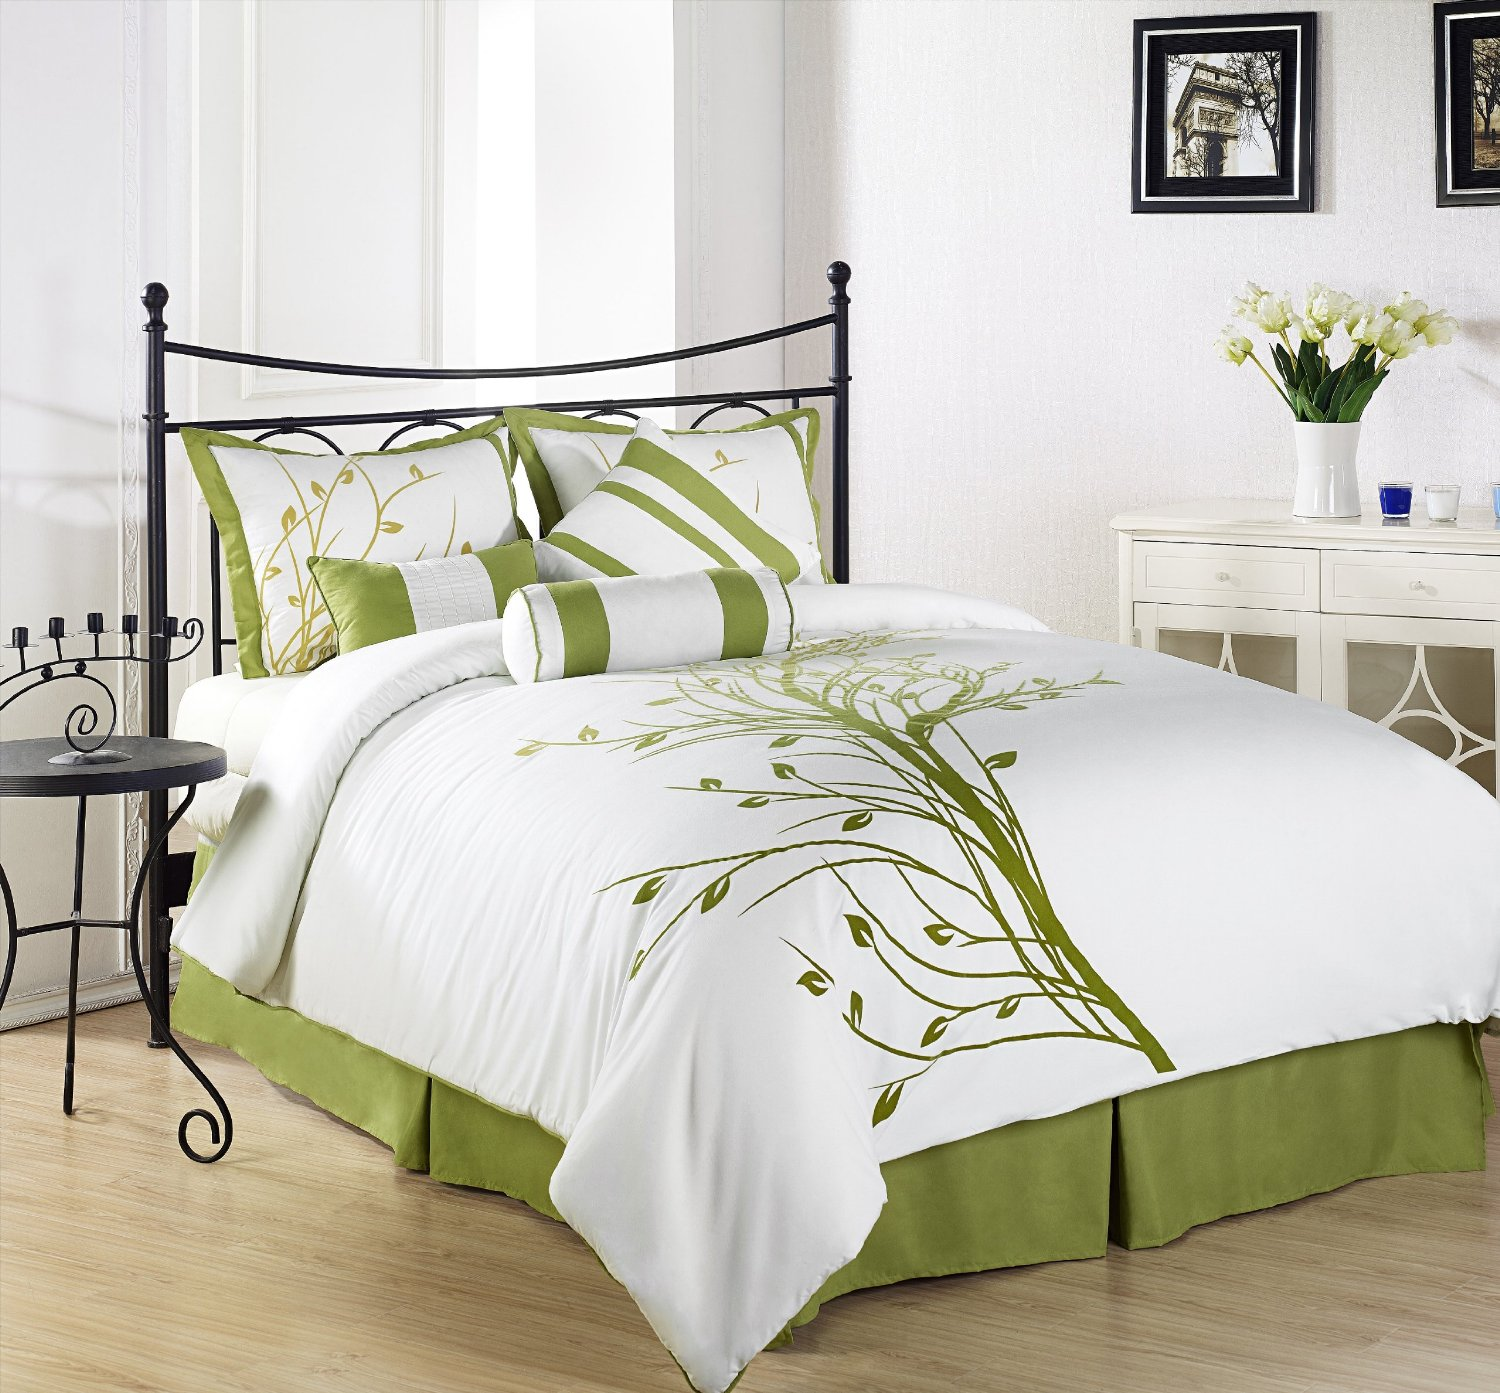 Brown And Green Bedroom Ideas: Olive Green Bedding Sets: Green Serene On A Budget